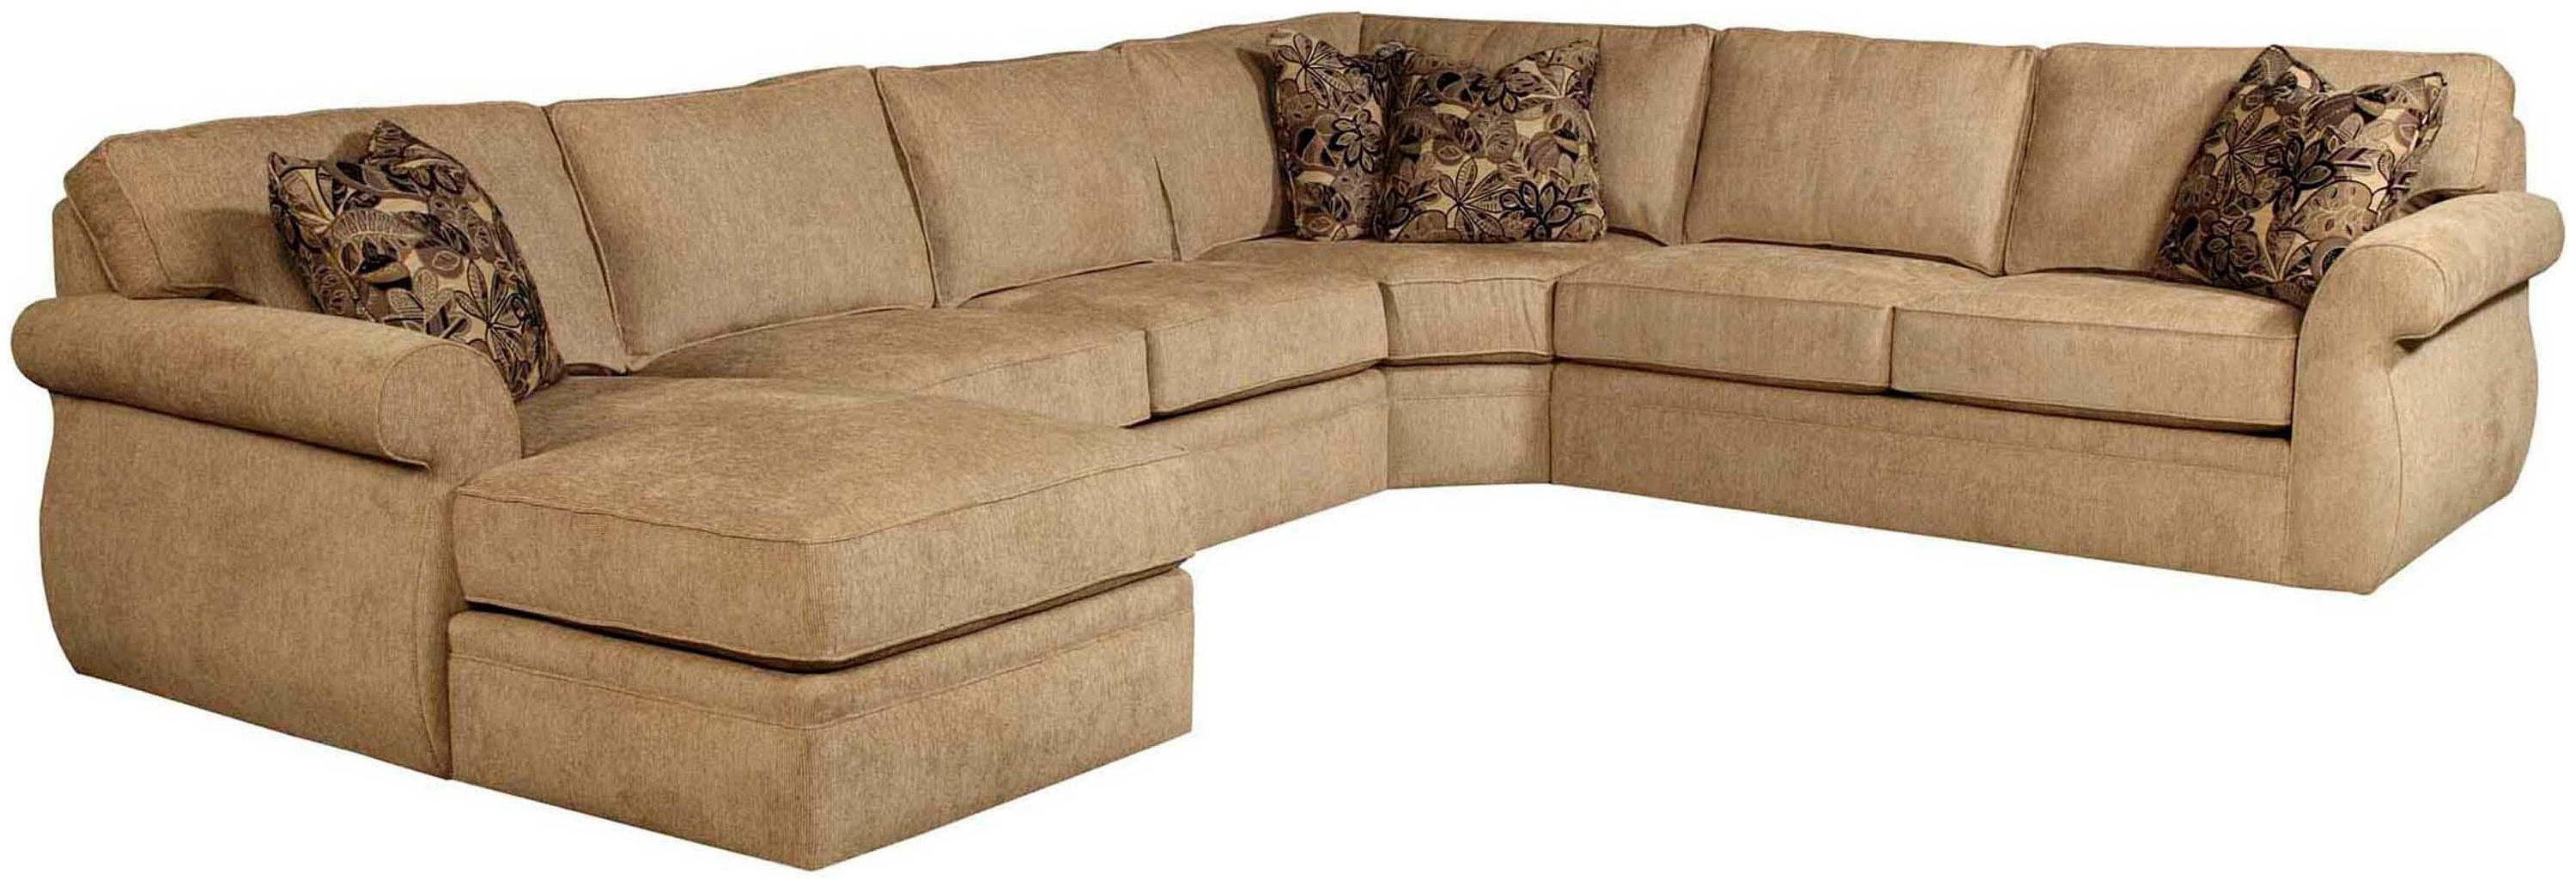 most comfortable sofa with chaise where to dispose sofas 20 best collection of long sectional